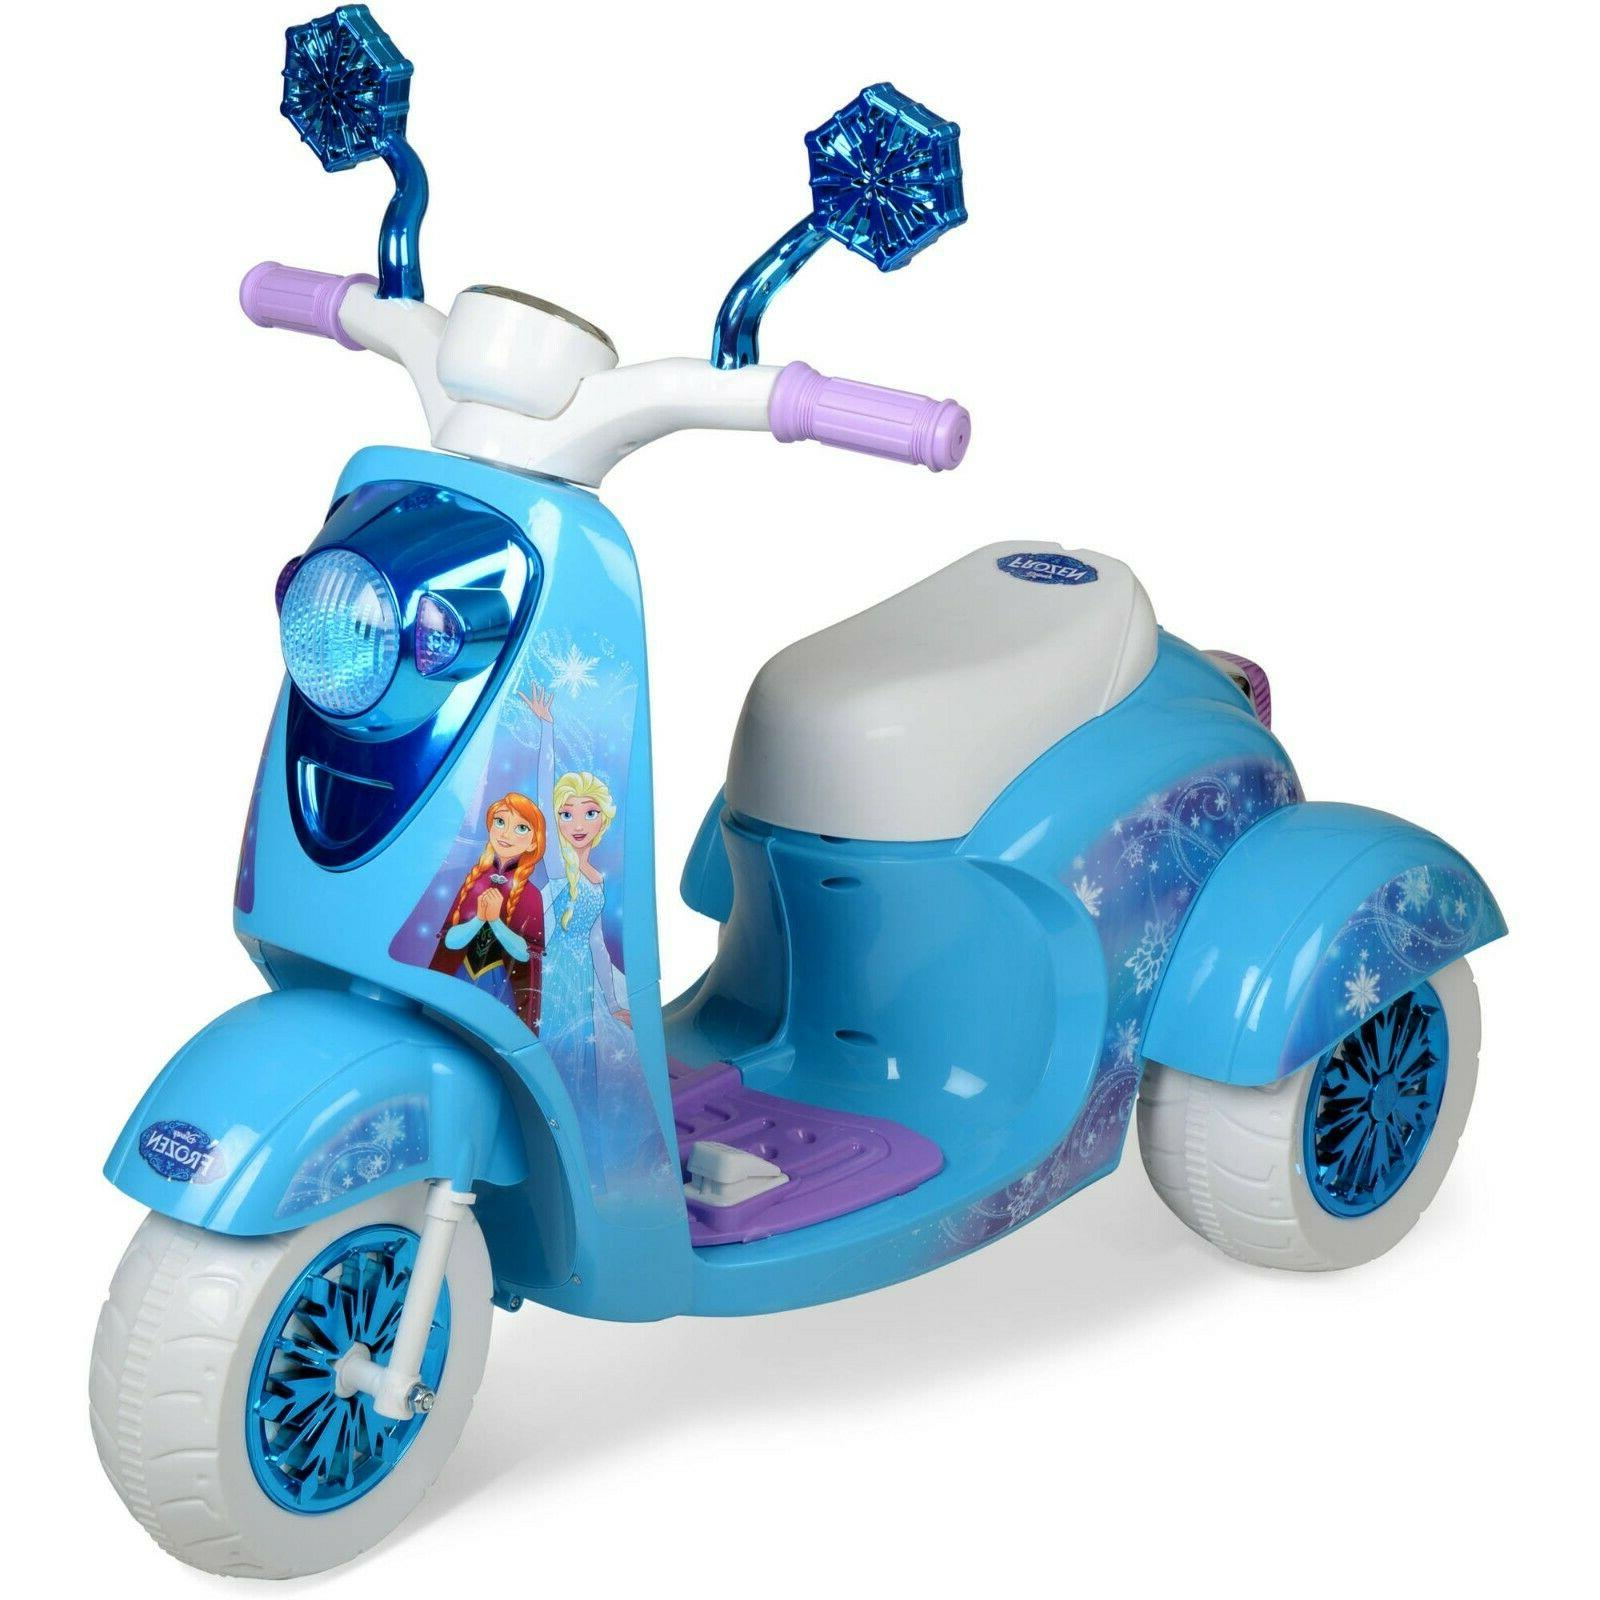 Scooters For Toddlers Ride On Toys For Girls 6V Disney Froze